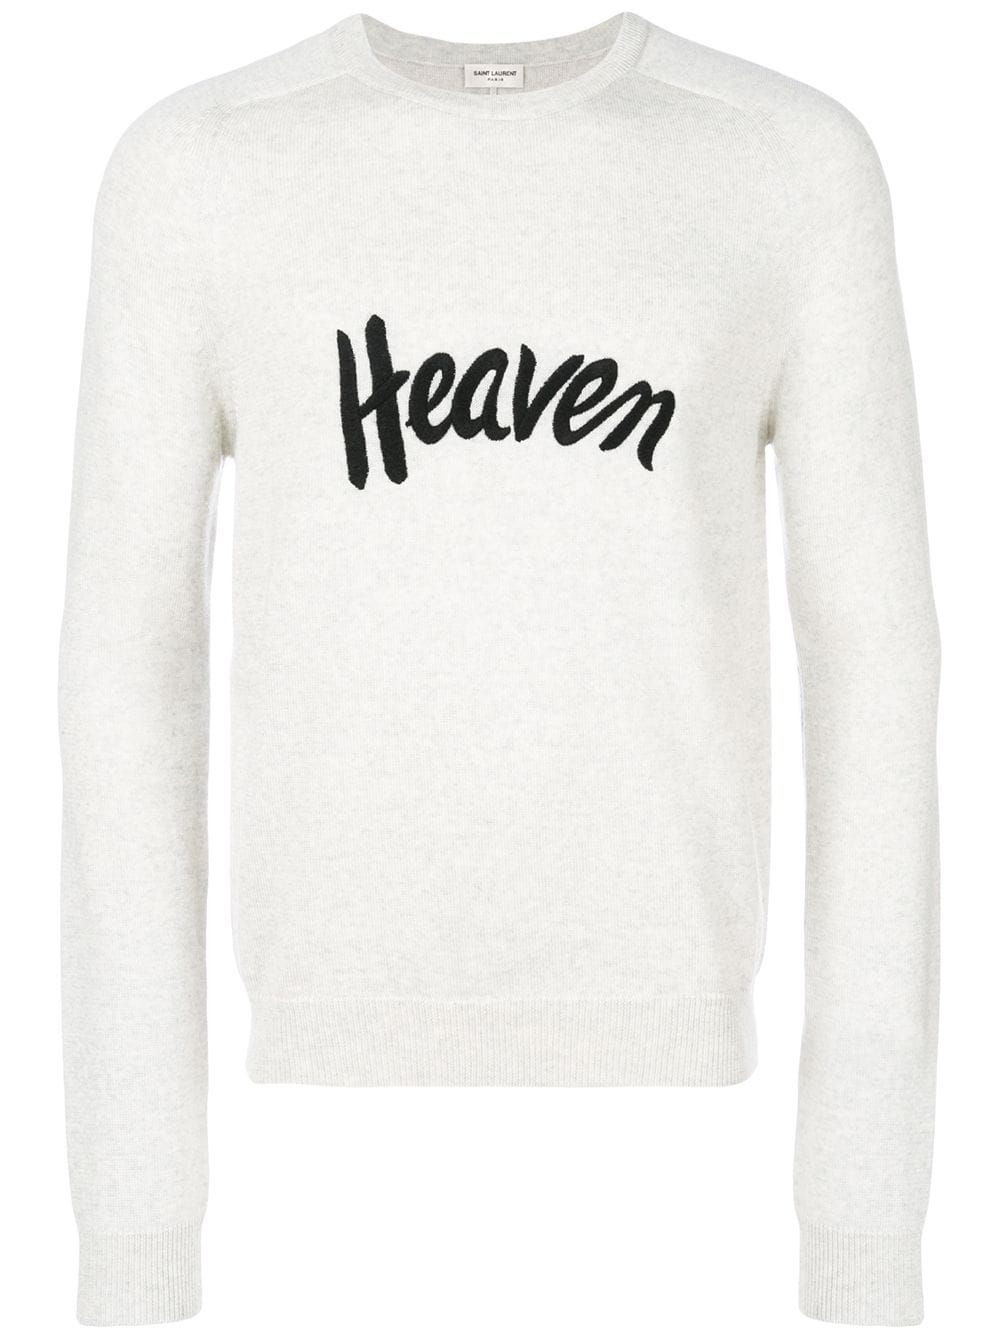 9f32d924a88 Saint Laurent slogan sweater - Grey in 2019 | Products | Sweaters ...